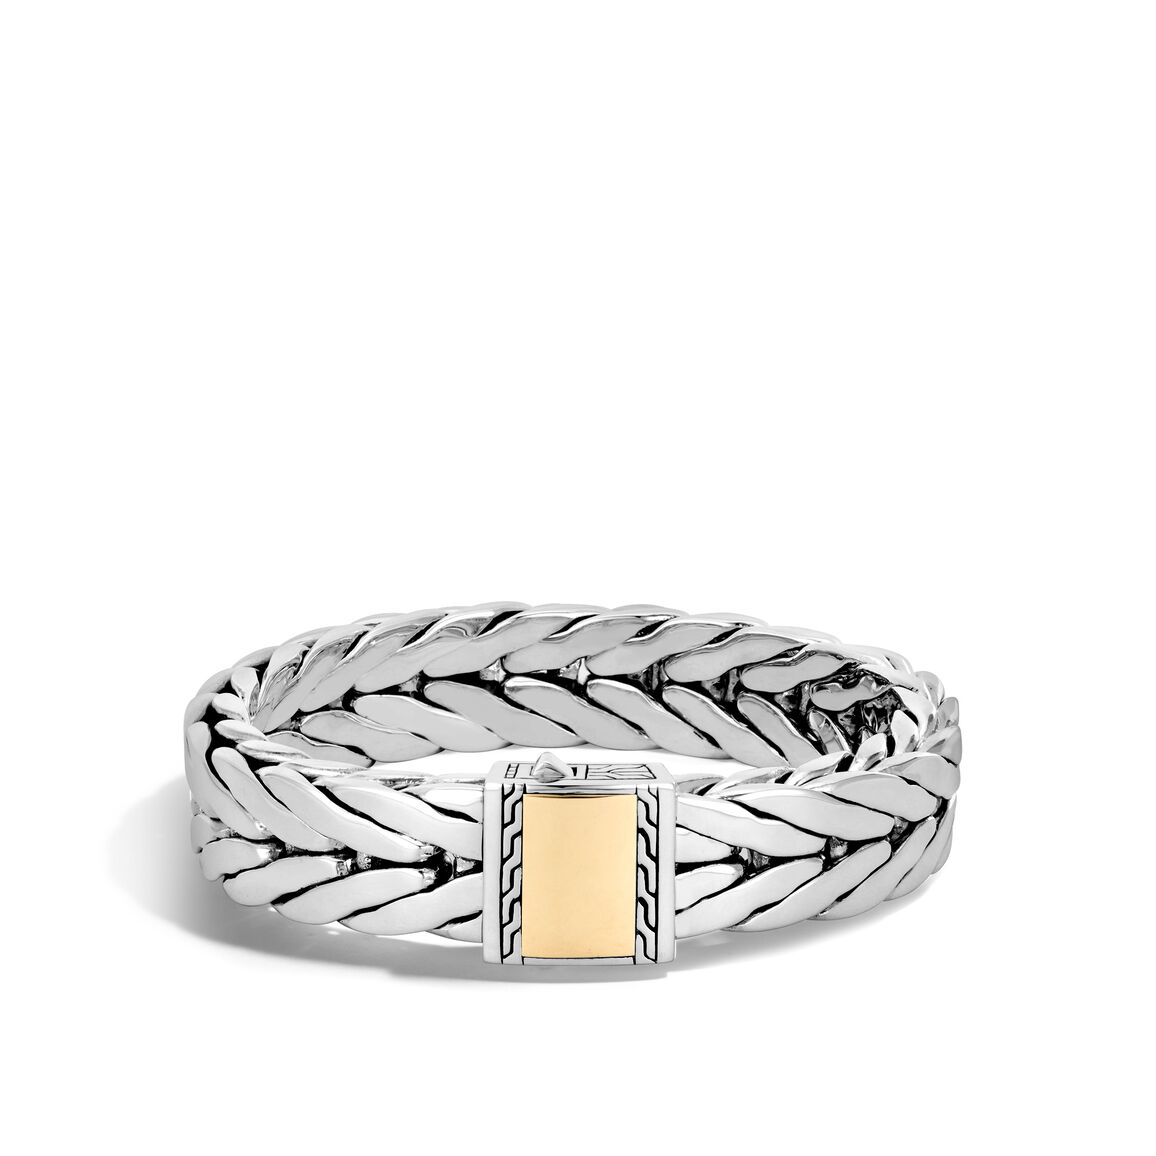 Modern Chain 16MM Bracelet in Silver and 18K Gold